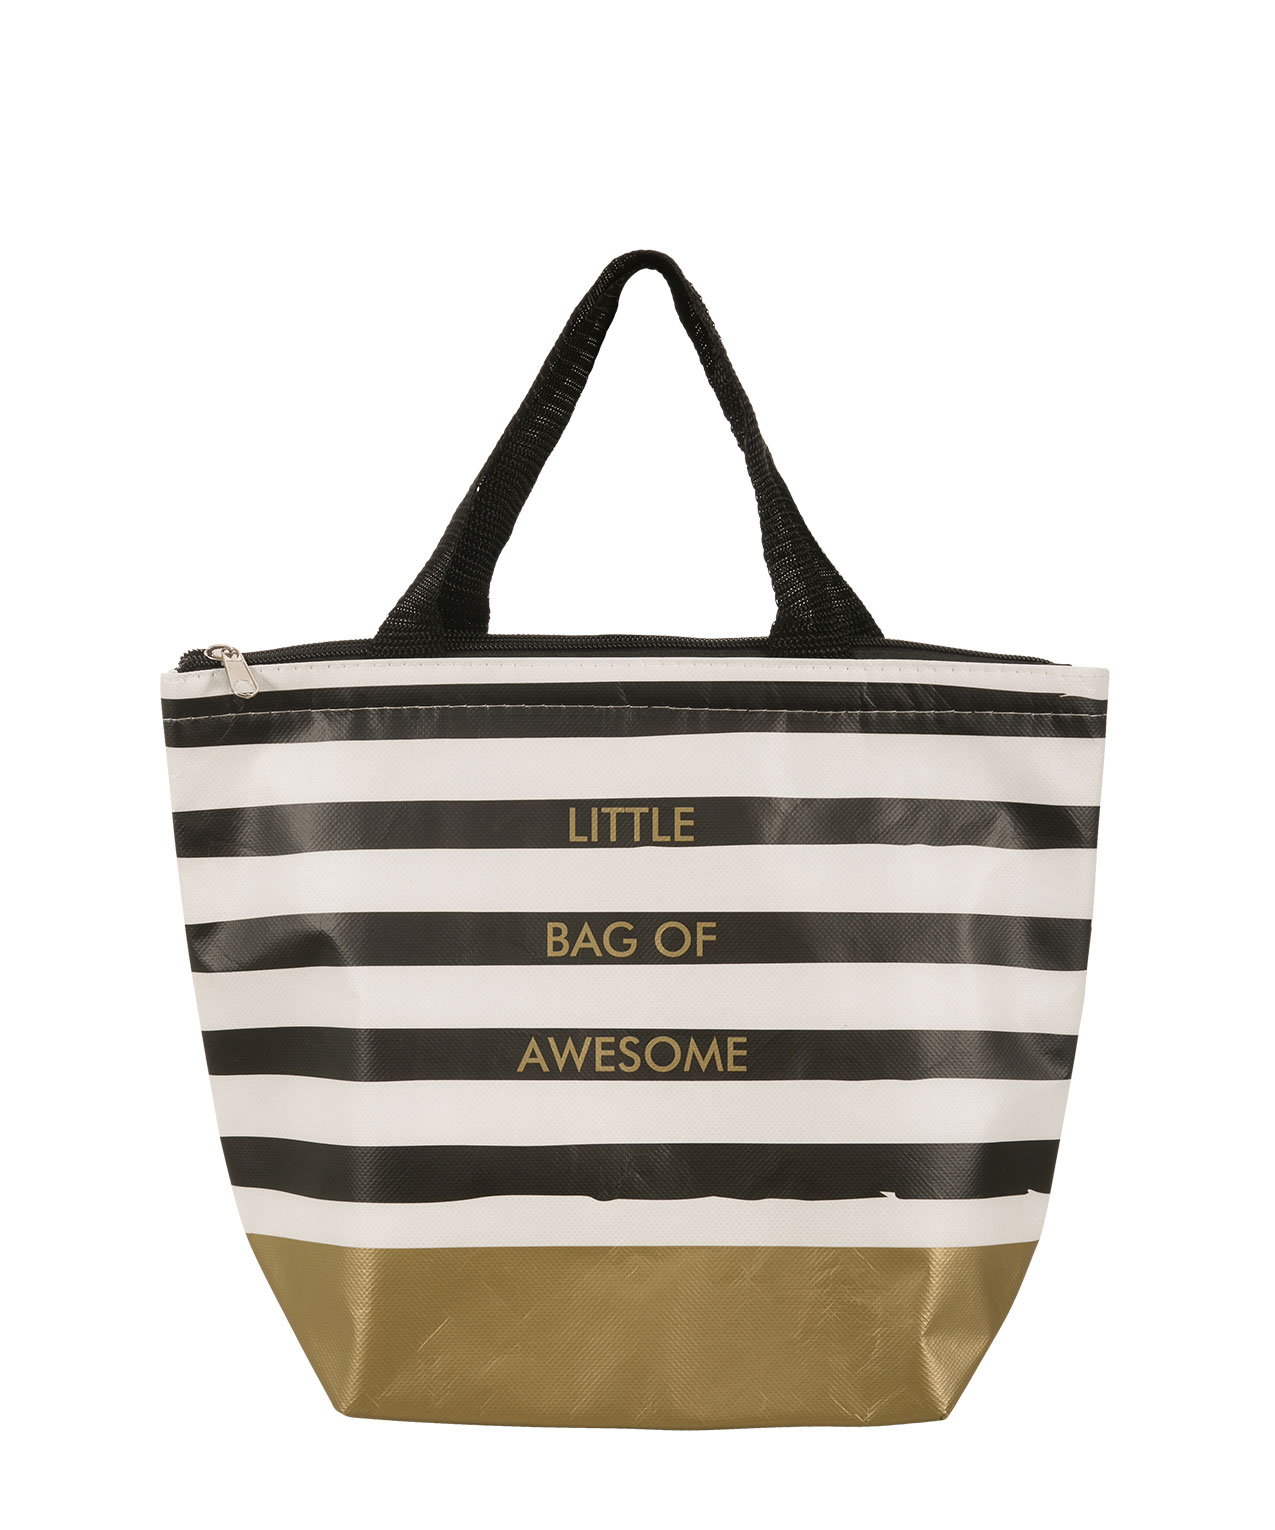 Bag Of Awesome Lunch Tote Black White Gold Hi Res